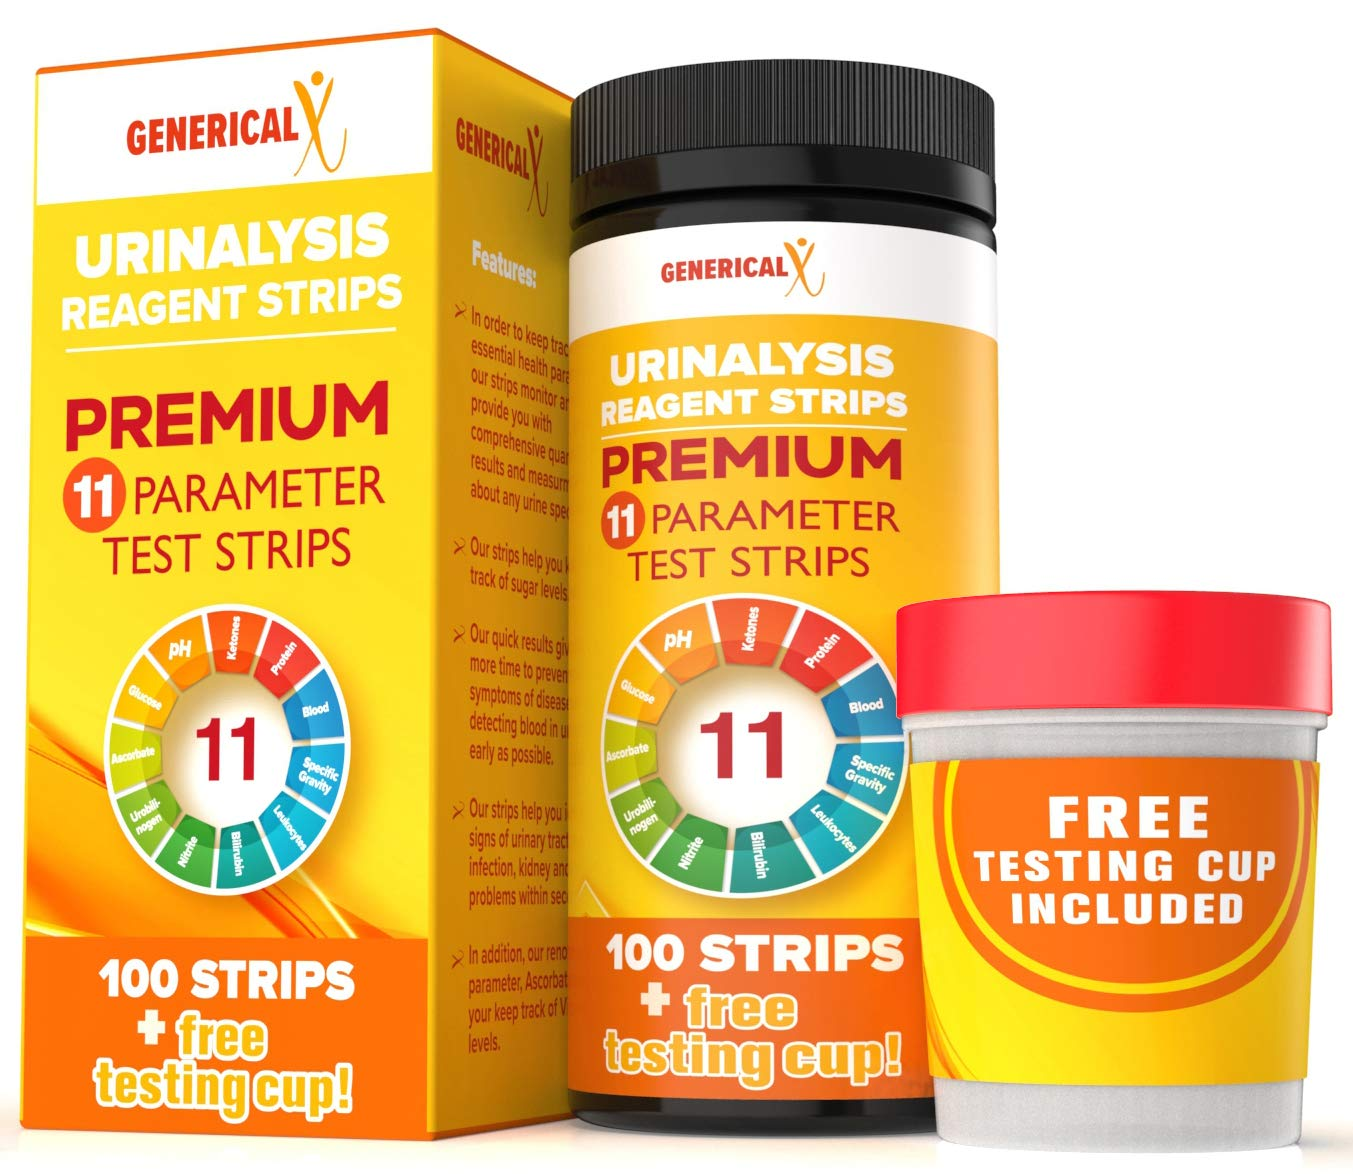 (100 Strips and Testing Cup Included)  11 Parameter Urine Test Kit   for UTI's, Ketosis, Blood, Protein, pH   For Gallbladder, Bladder, Urinary Tract, Kidney, Liver Health   FDA-Approved Reagents by Generical X